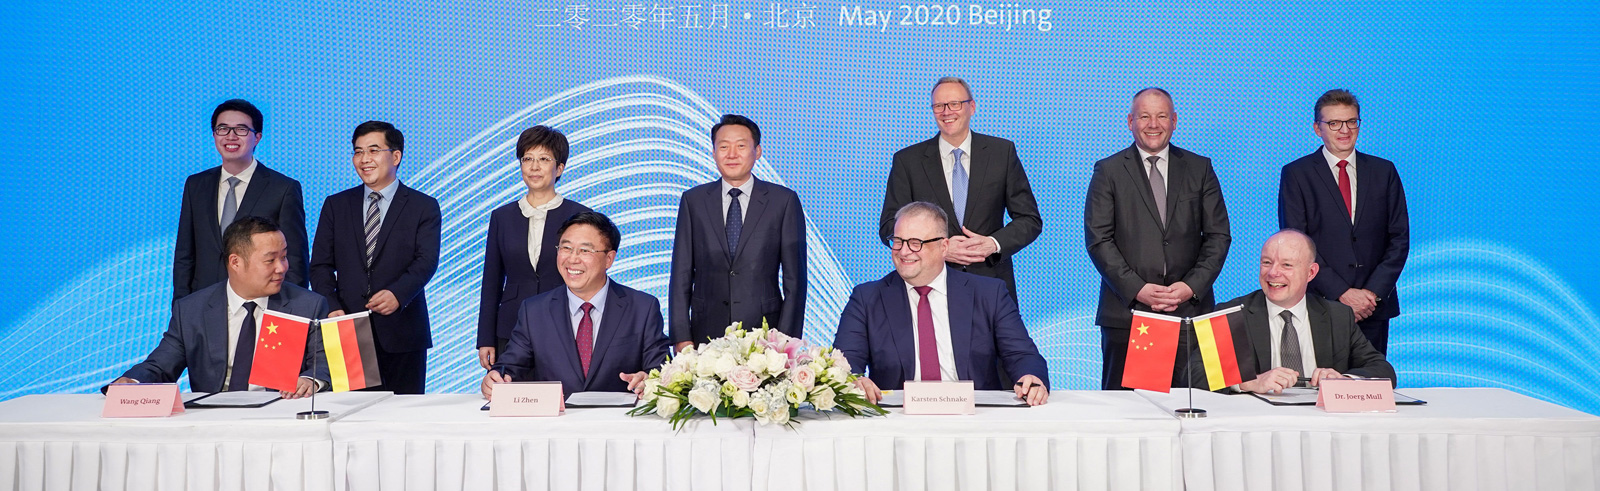 Volkswagen increases its stake in JAC VW China - its joint venture for e-mobility